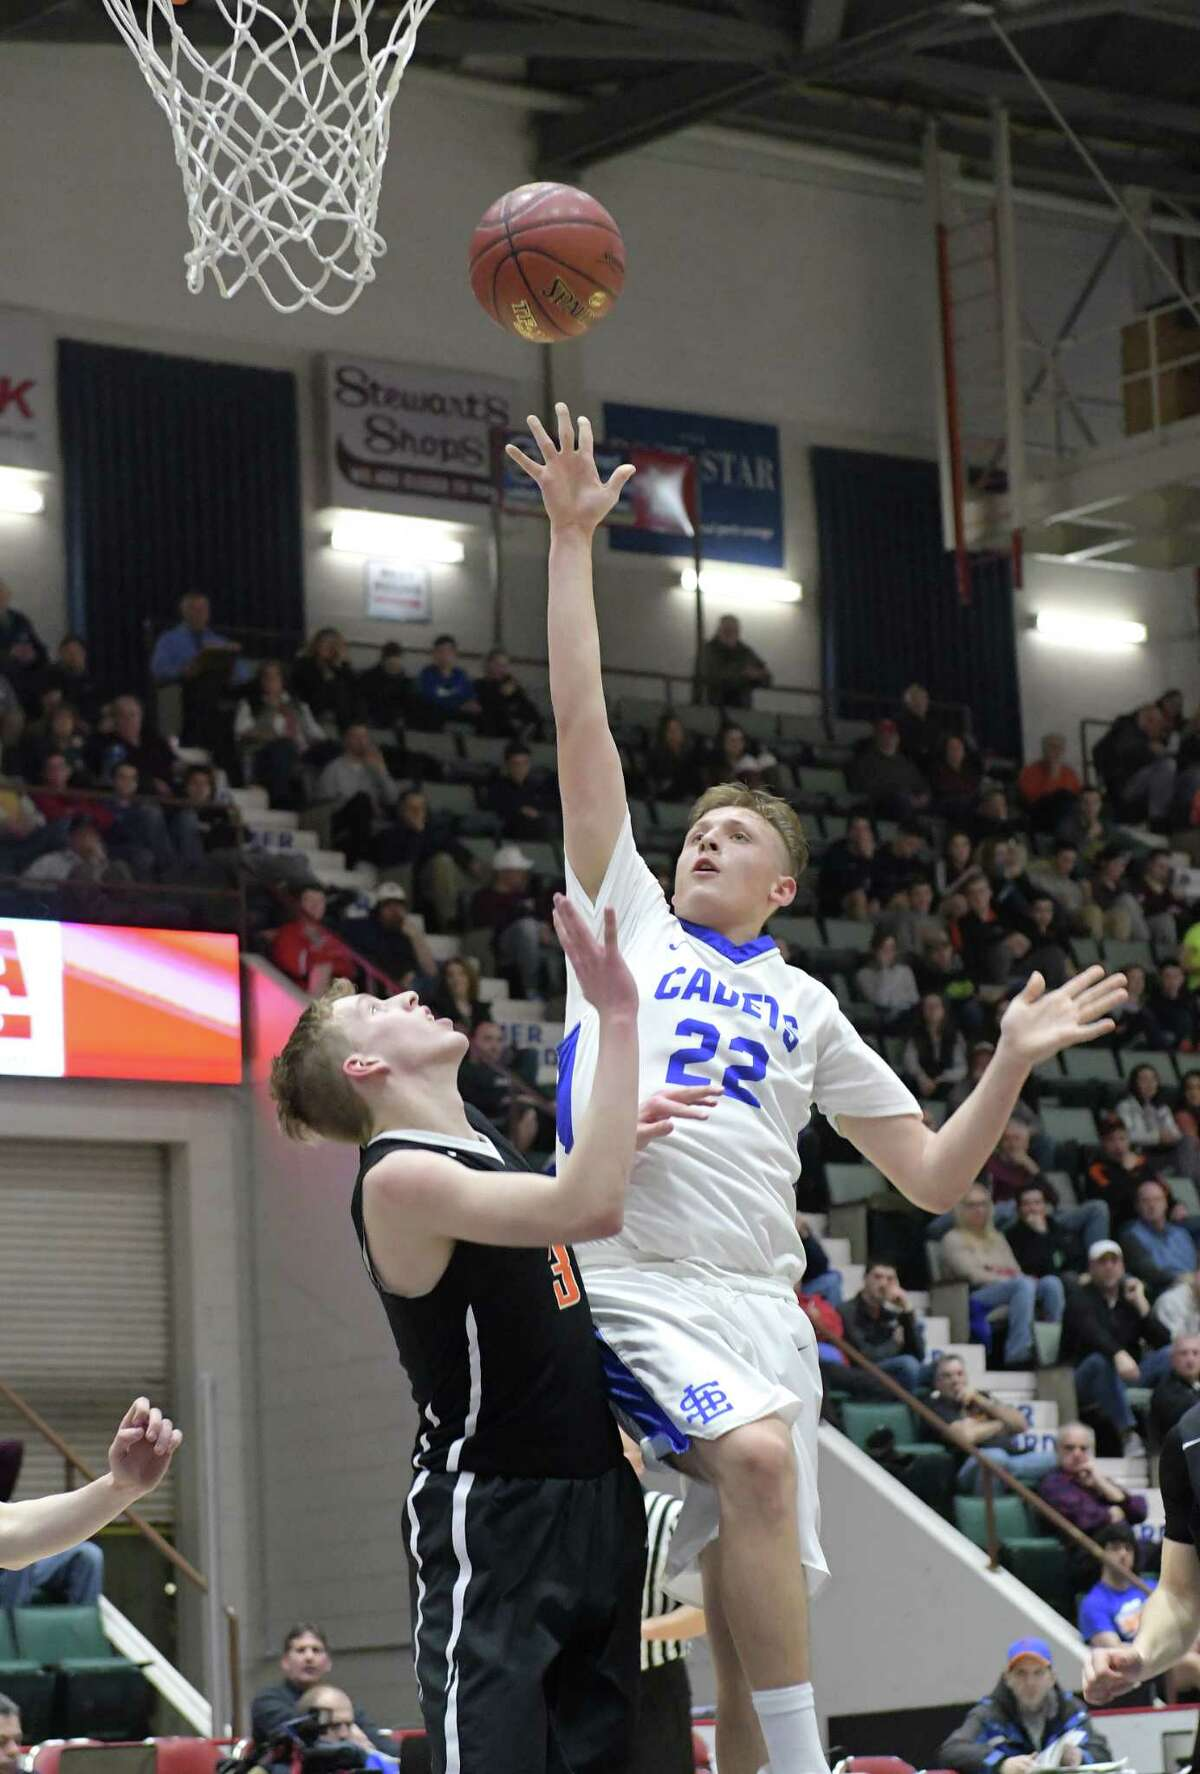 Seth LaForest of La Salle Institute puts up a shot over a Bethlehem player during their Class AA semifinal game at the Glens Falls Civic Center on Tuesday, Feb. 28, 2017, in Glens Falls, N.Y. (Paul Buckowski / Times Union)